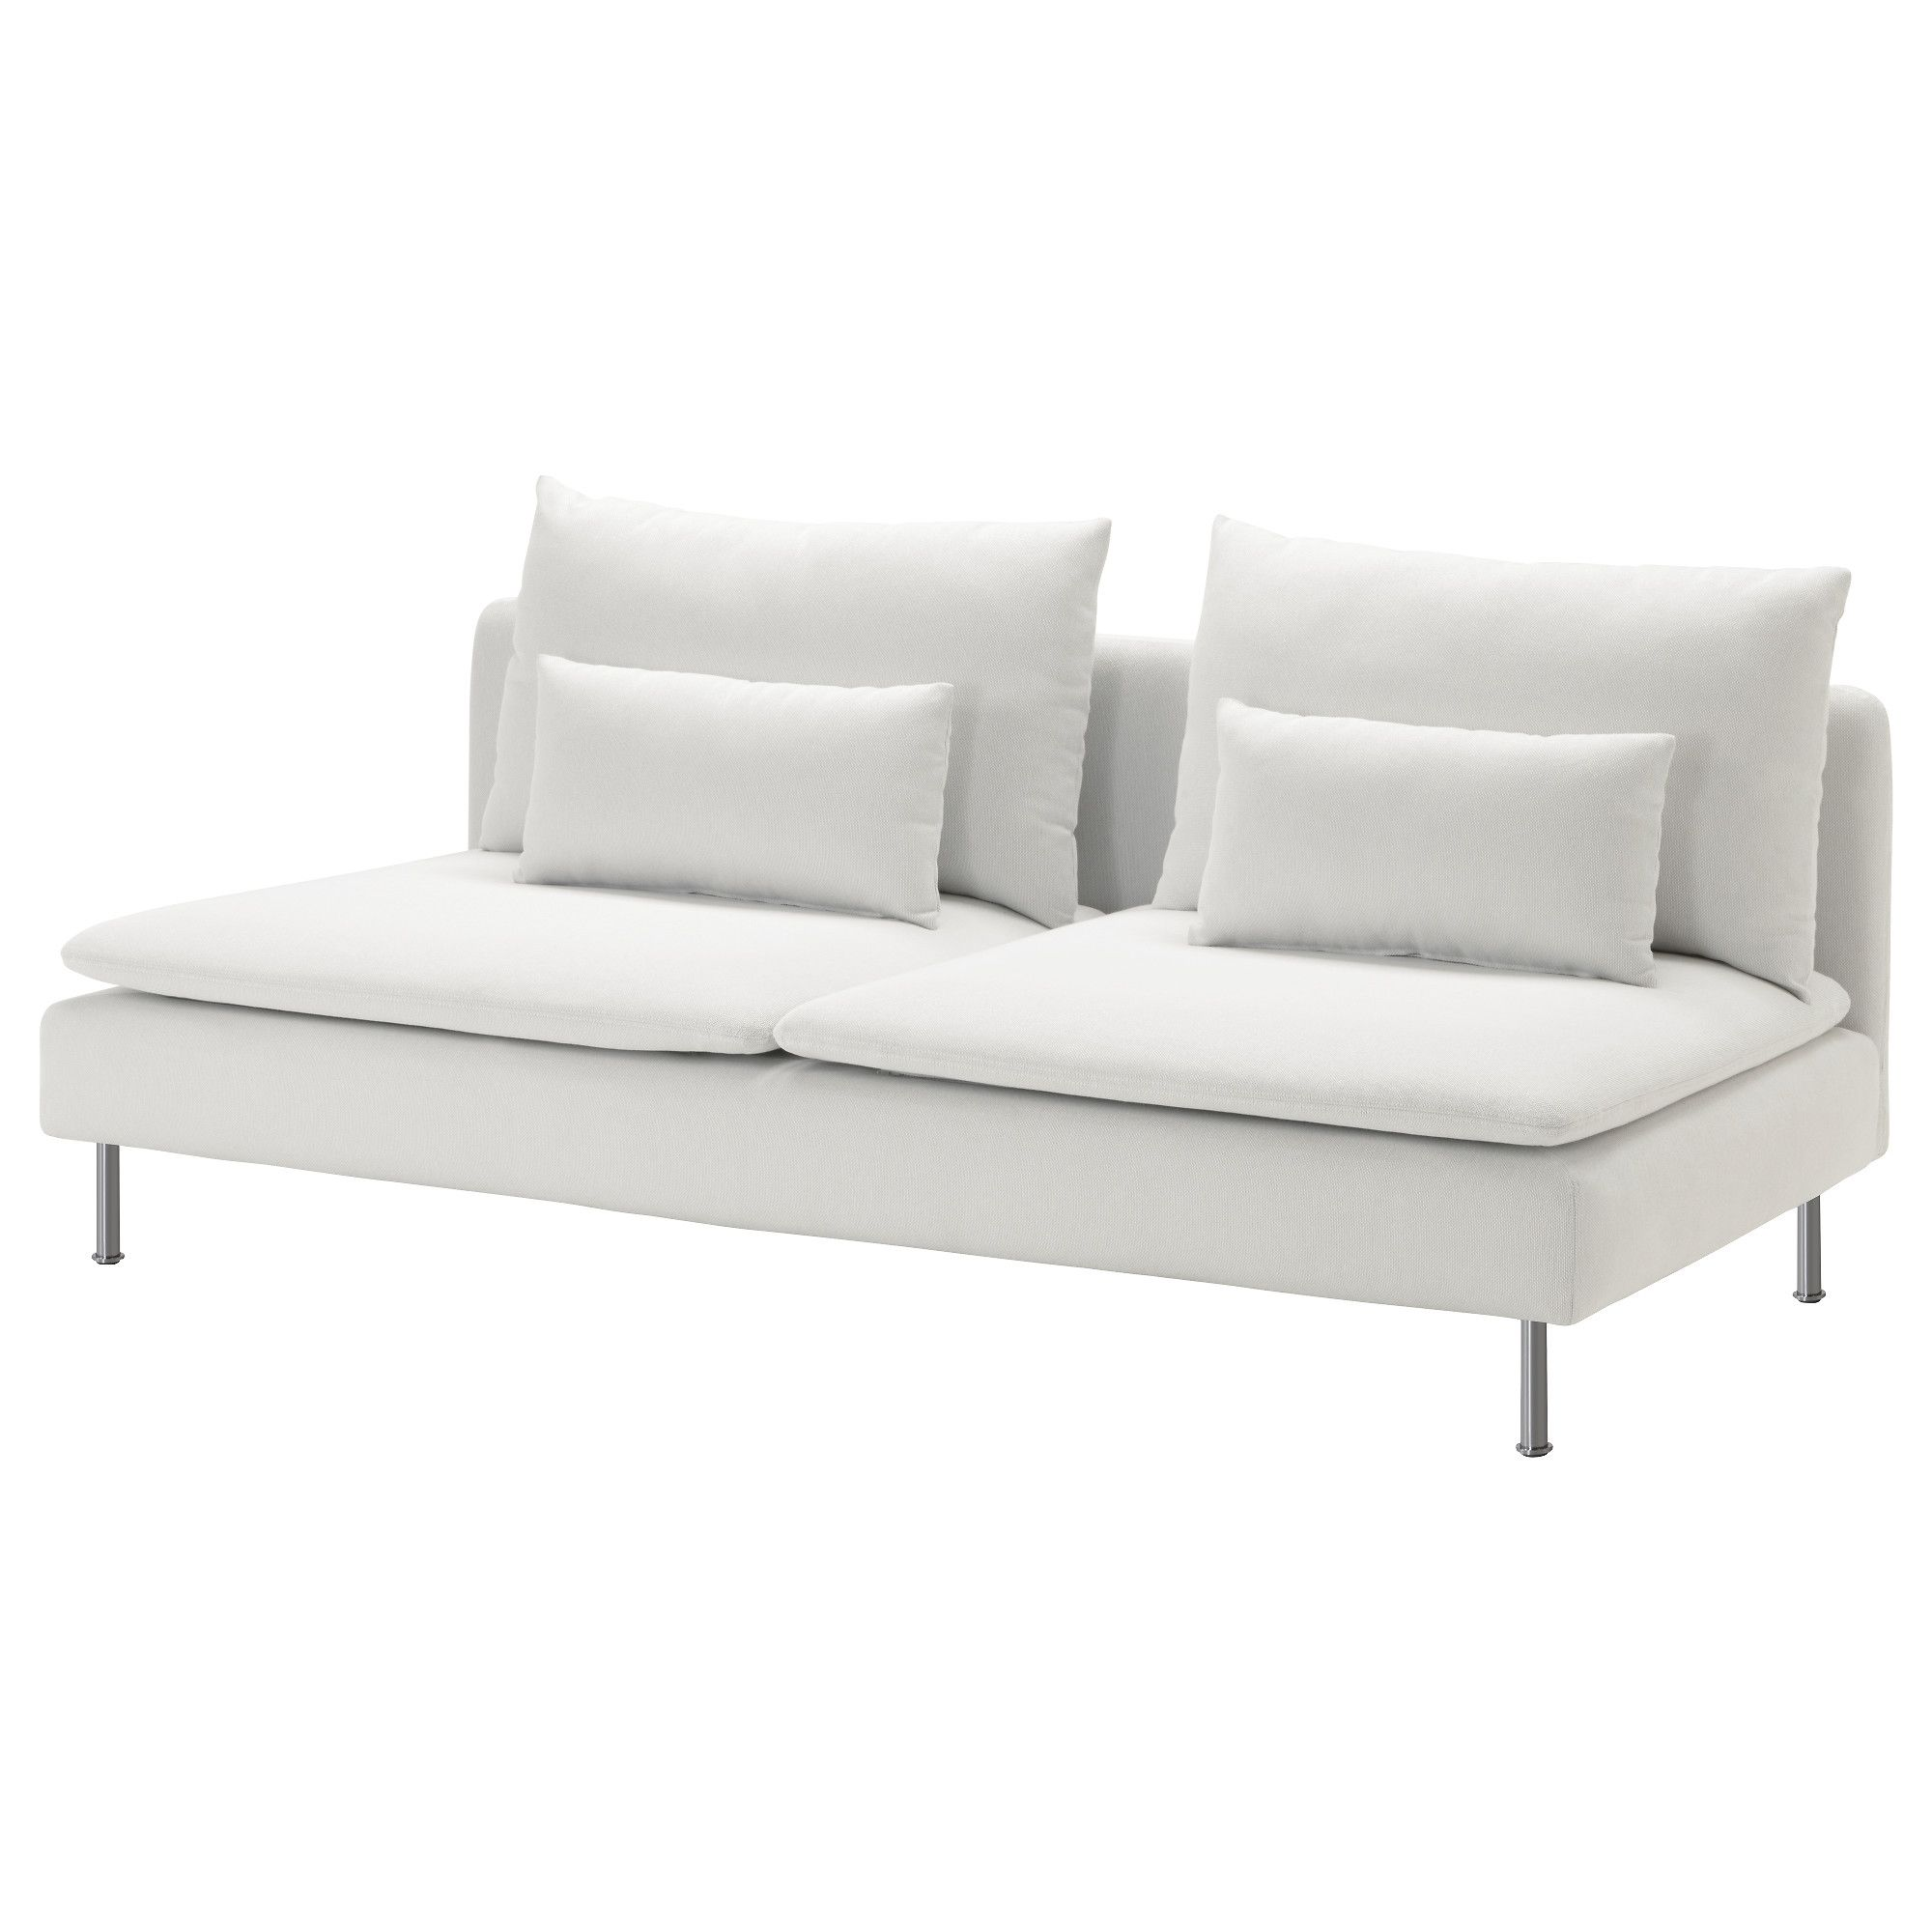 Ikea SÖderhamn Sofa Finnsta White Seating Series Allows You To Sit Deeply Low And Softly With The Loose Back Cushions For Extra Support